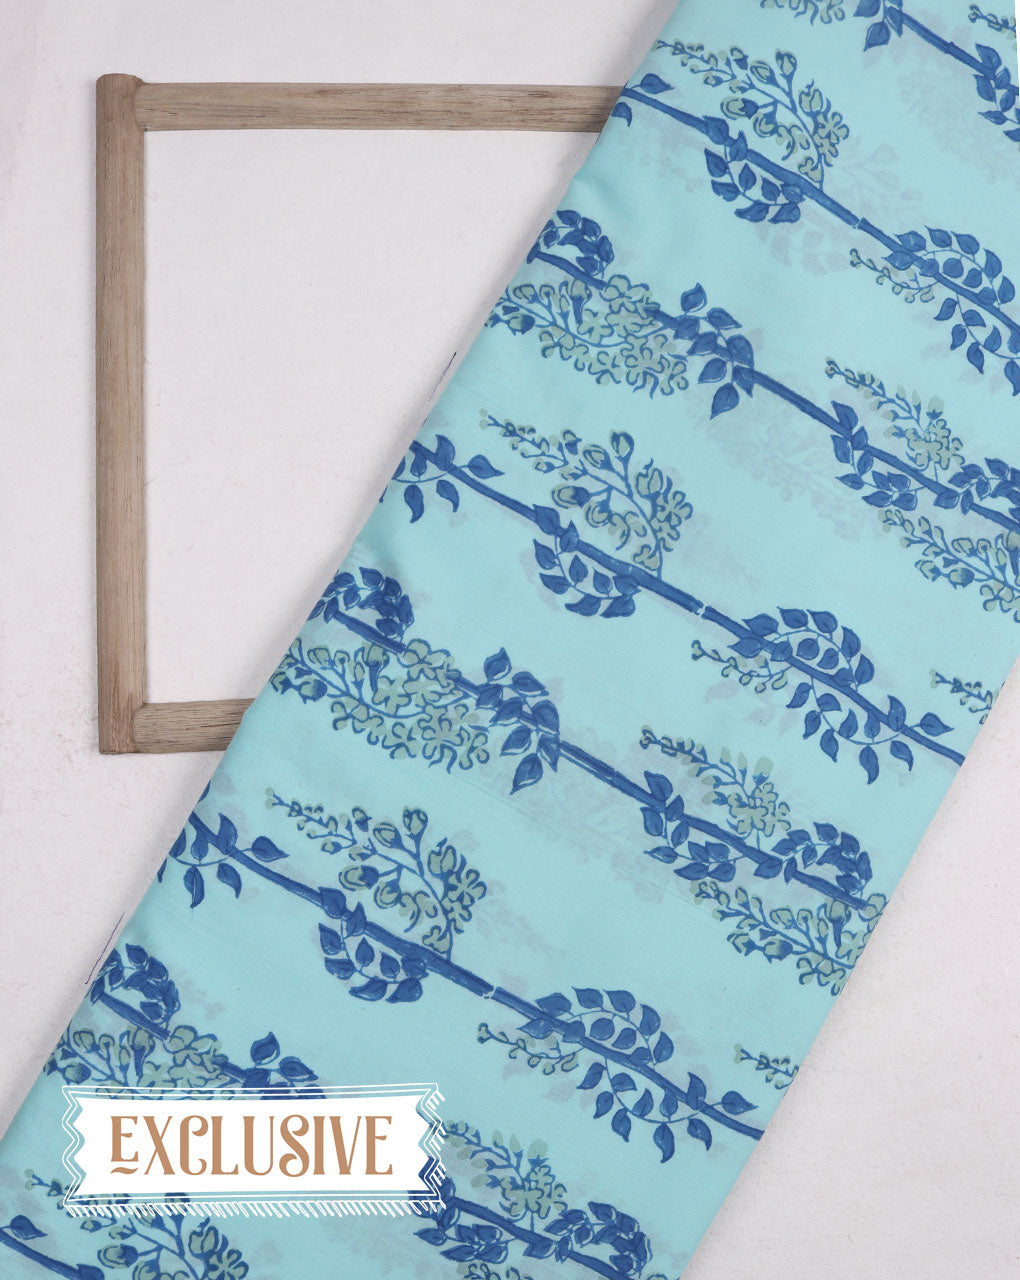 Aqua & Blue Exclusive Design Floral Hand Block Cotton Fabric - Fabriclore.com